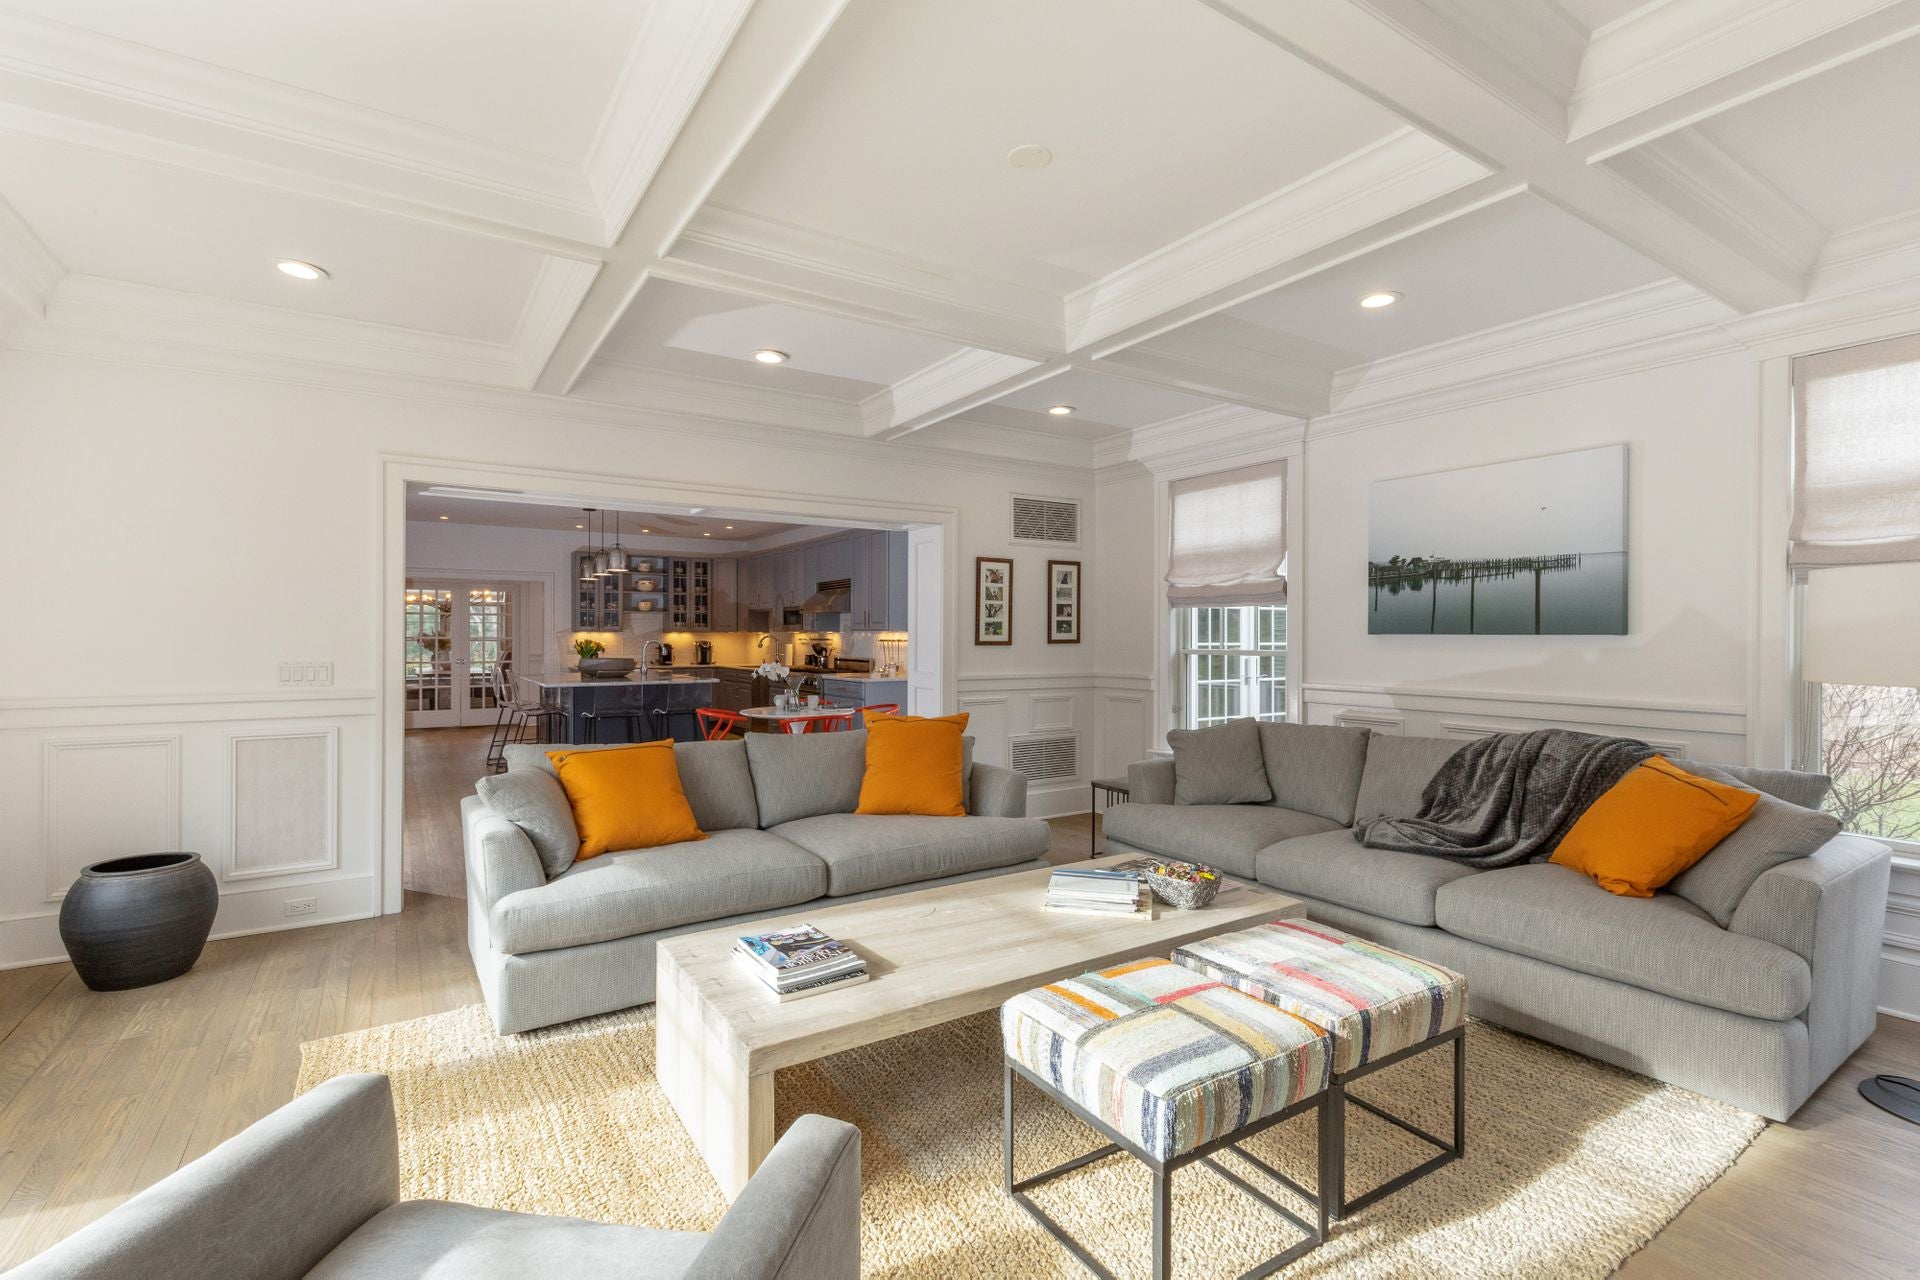 Douglas Elliman Noelles Lane, East Hampton | Interior Design/Staging by Lynda Sylvester